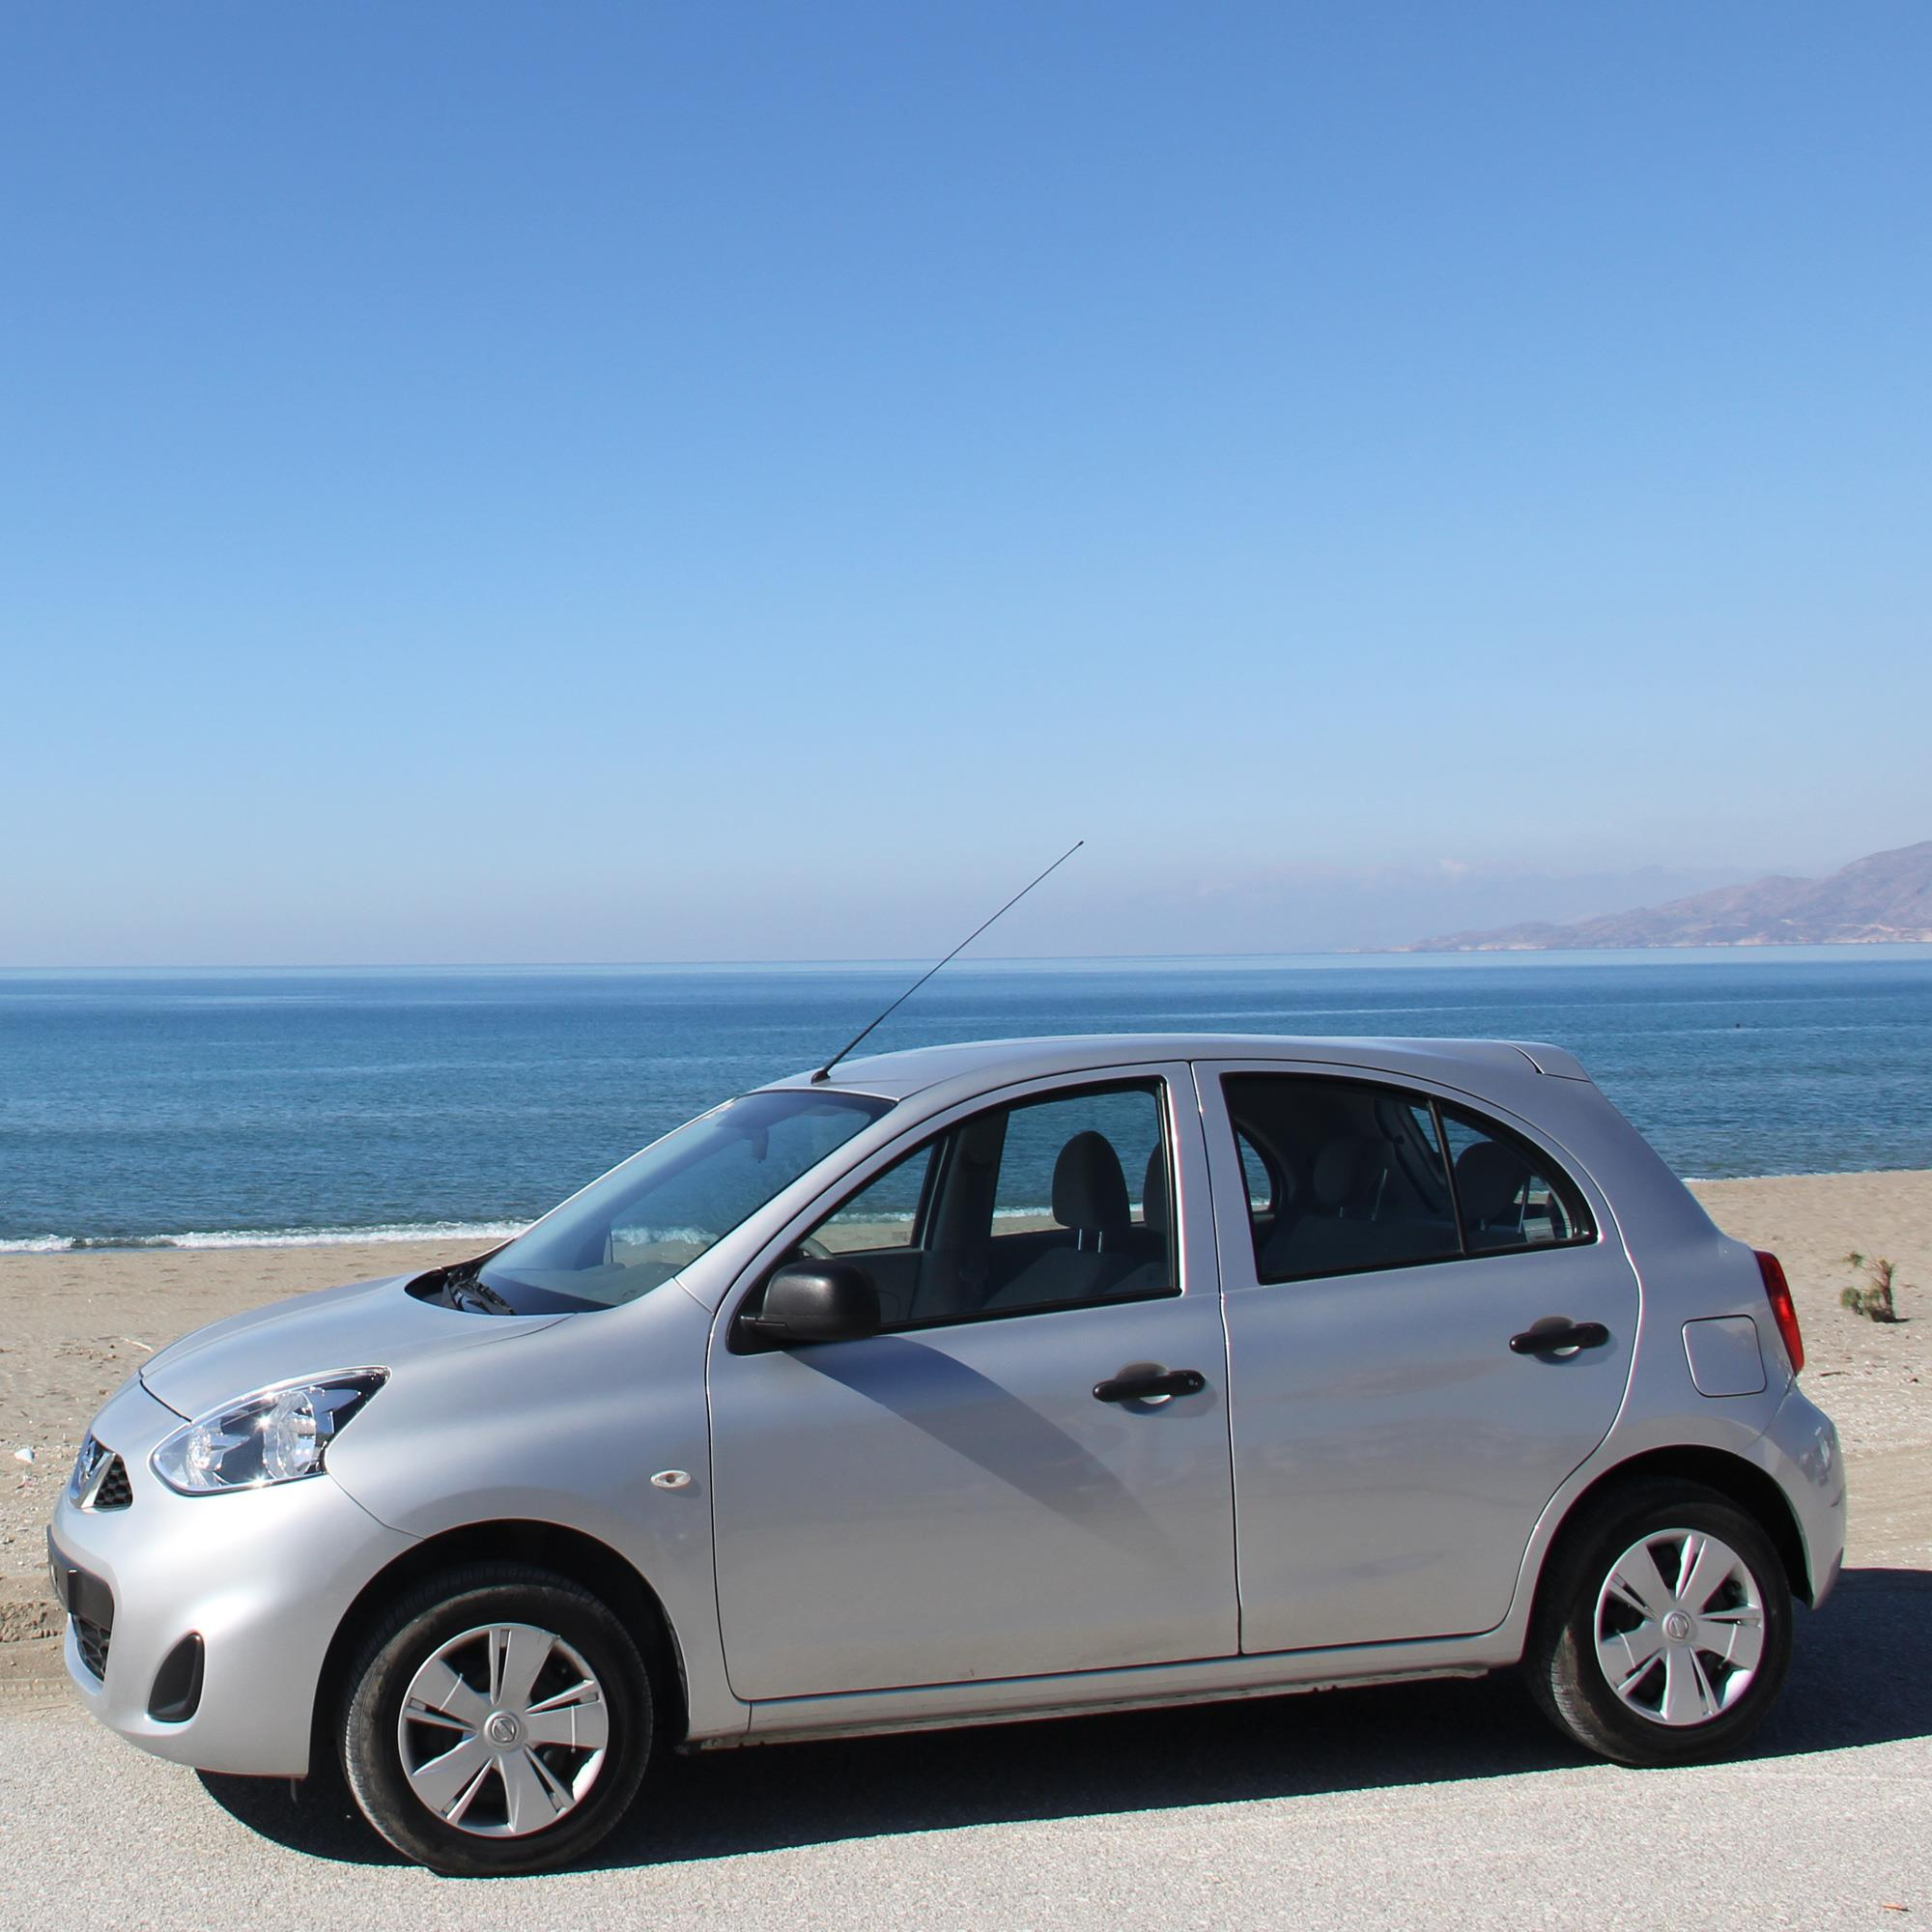 Category A3 - Nissan Micra